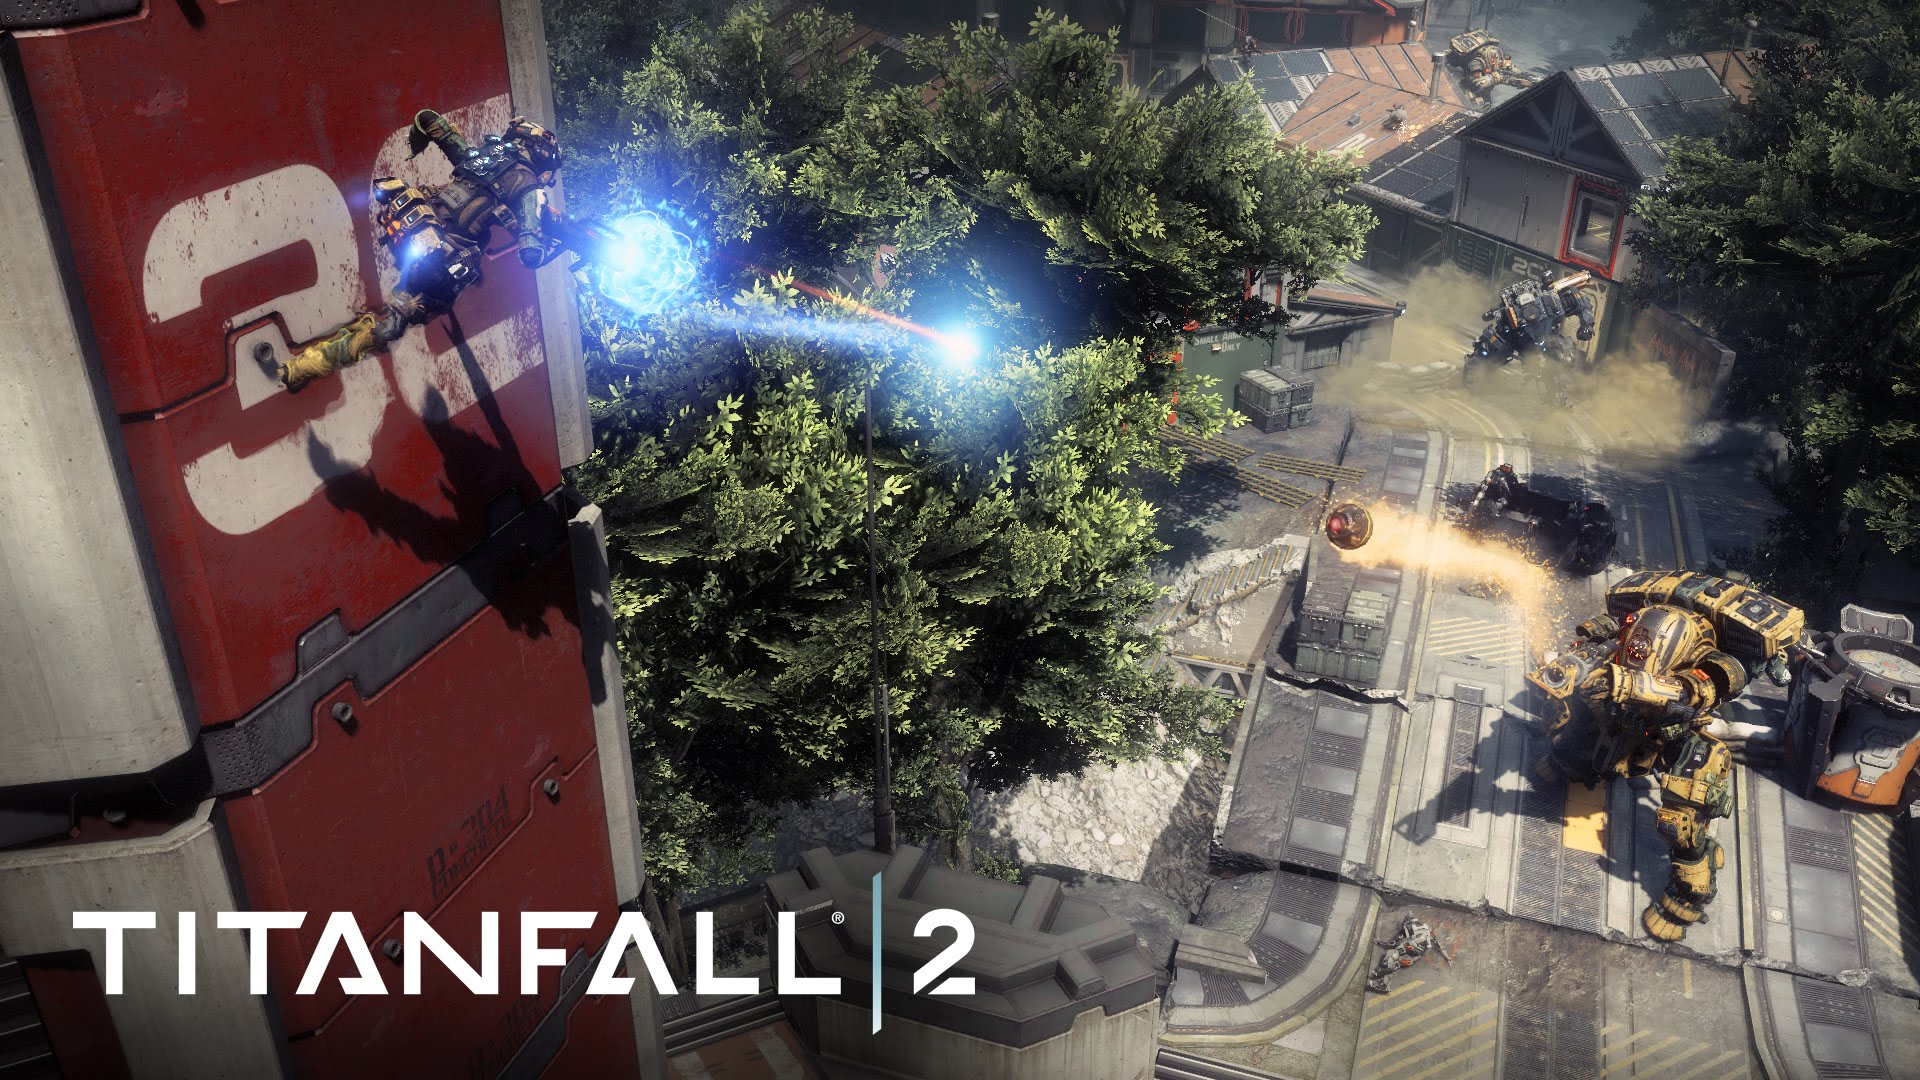 Titanfall 2 Live from Gamescom 2016